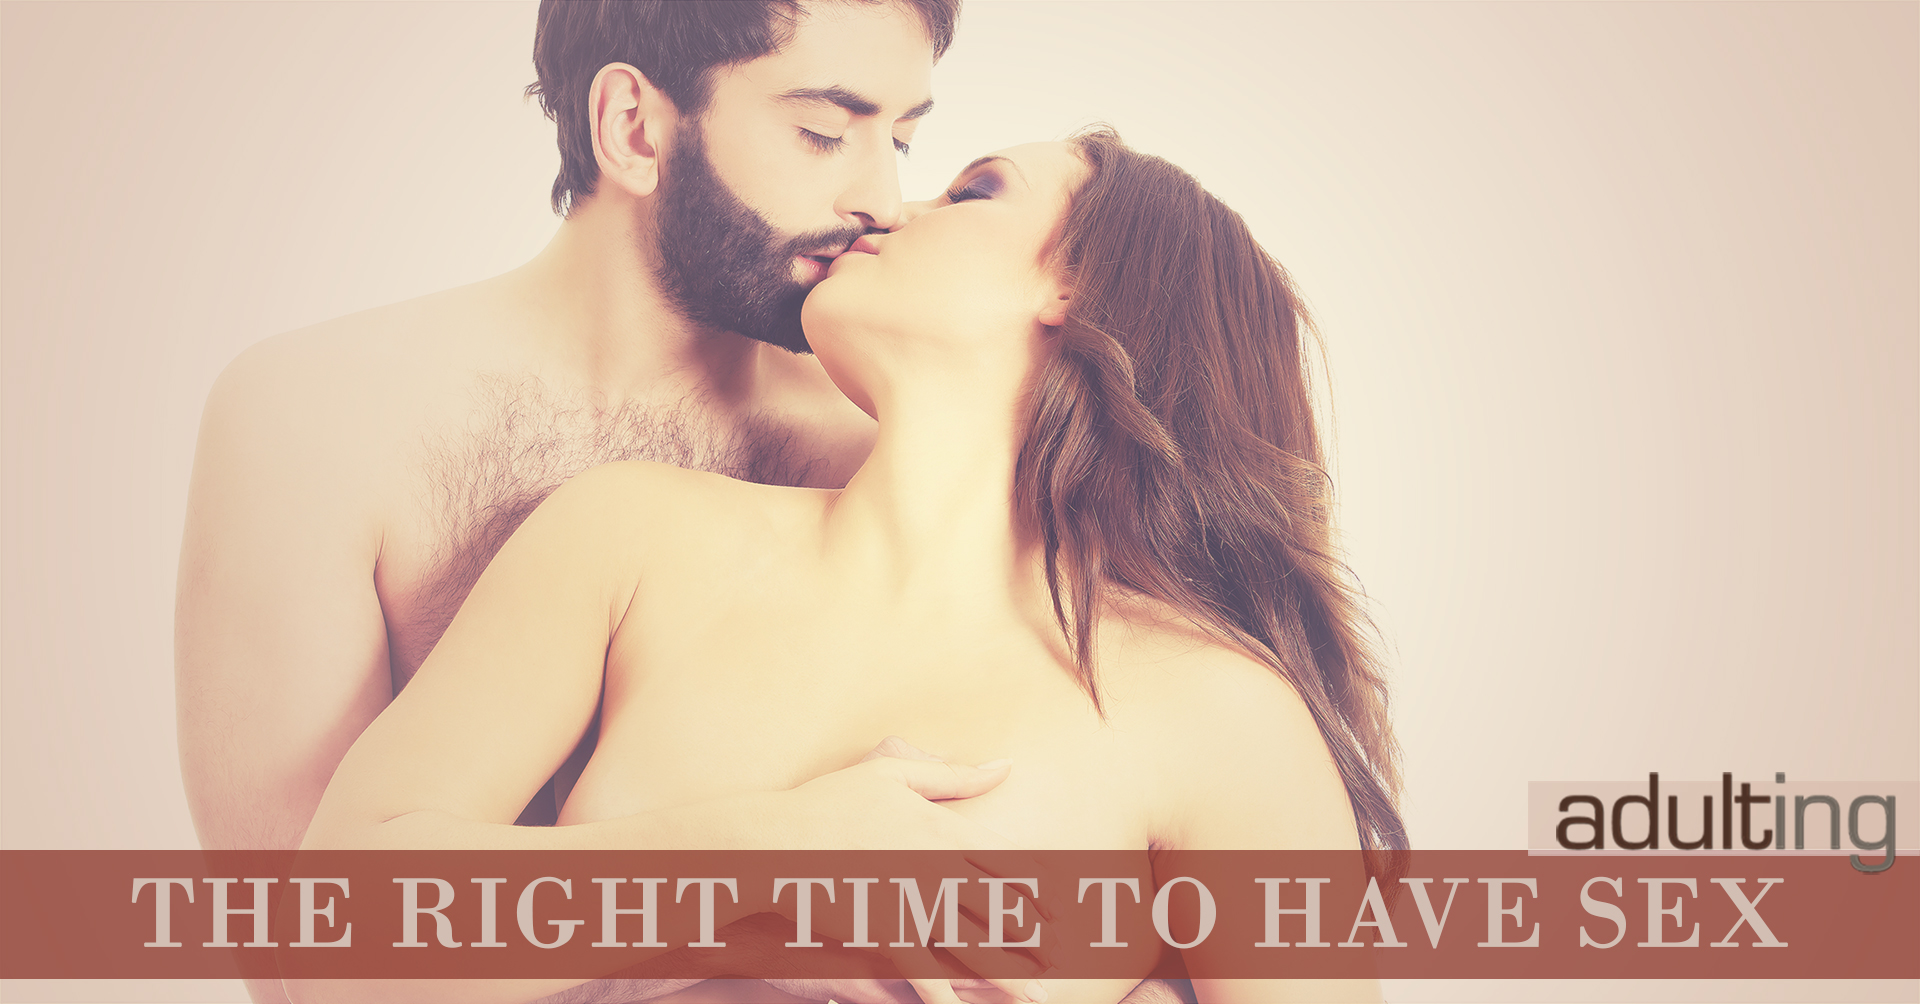 The Right Time to Have Sex